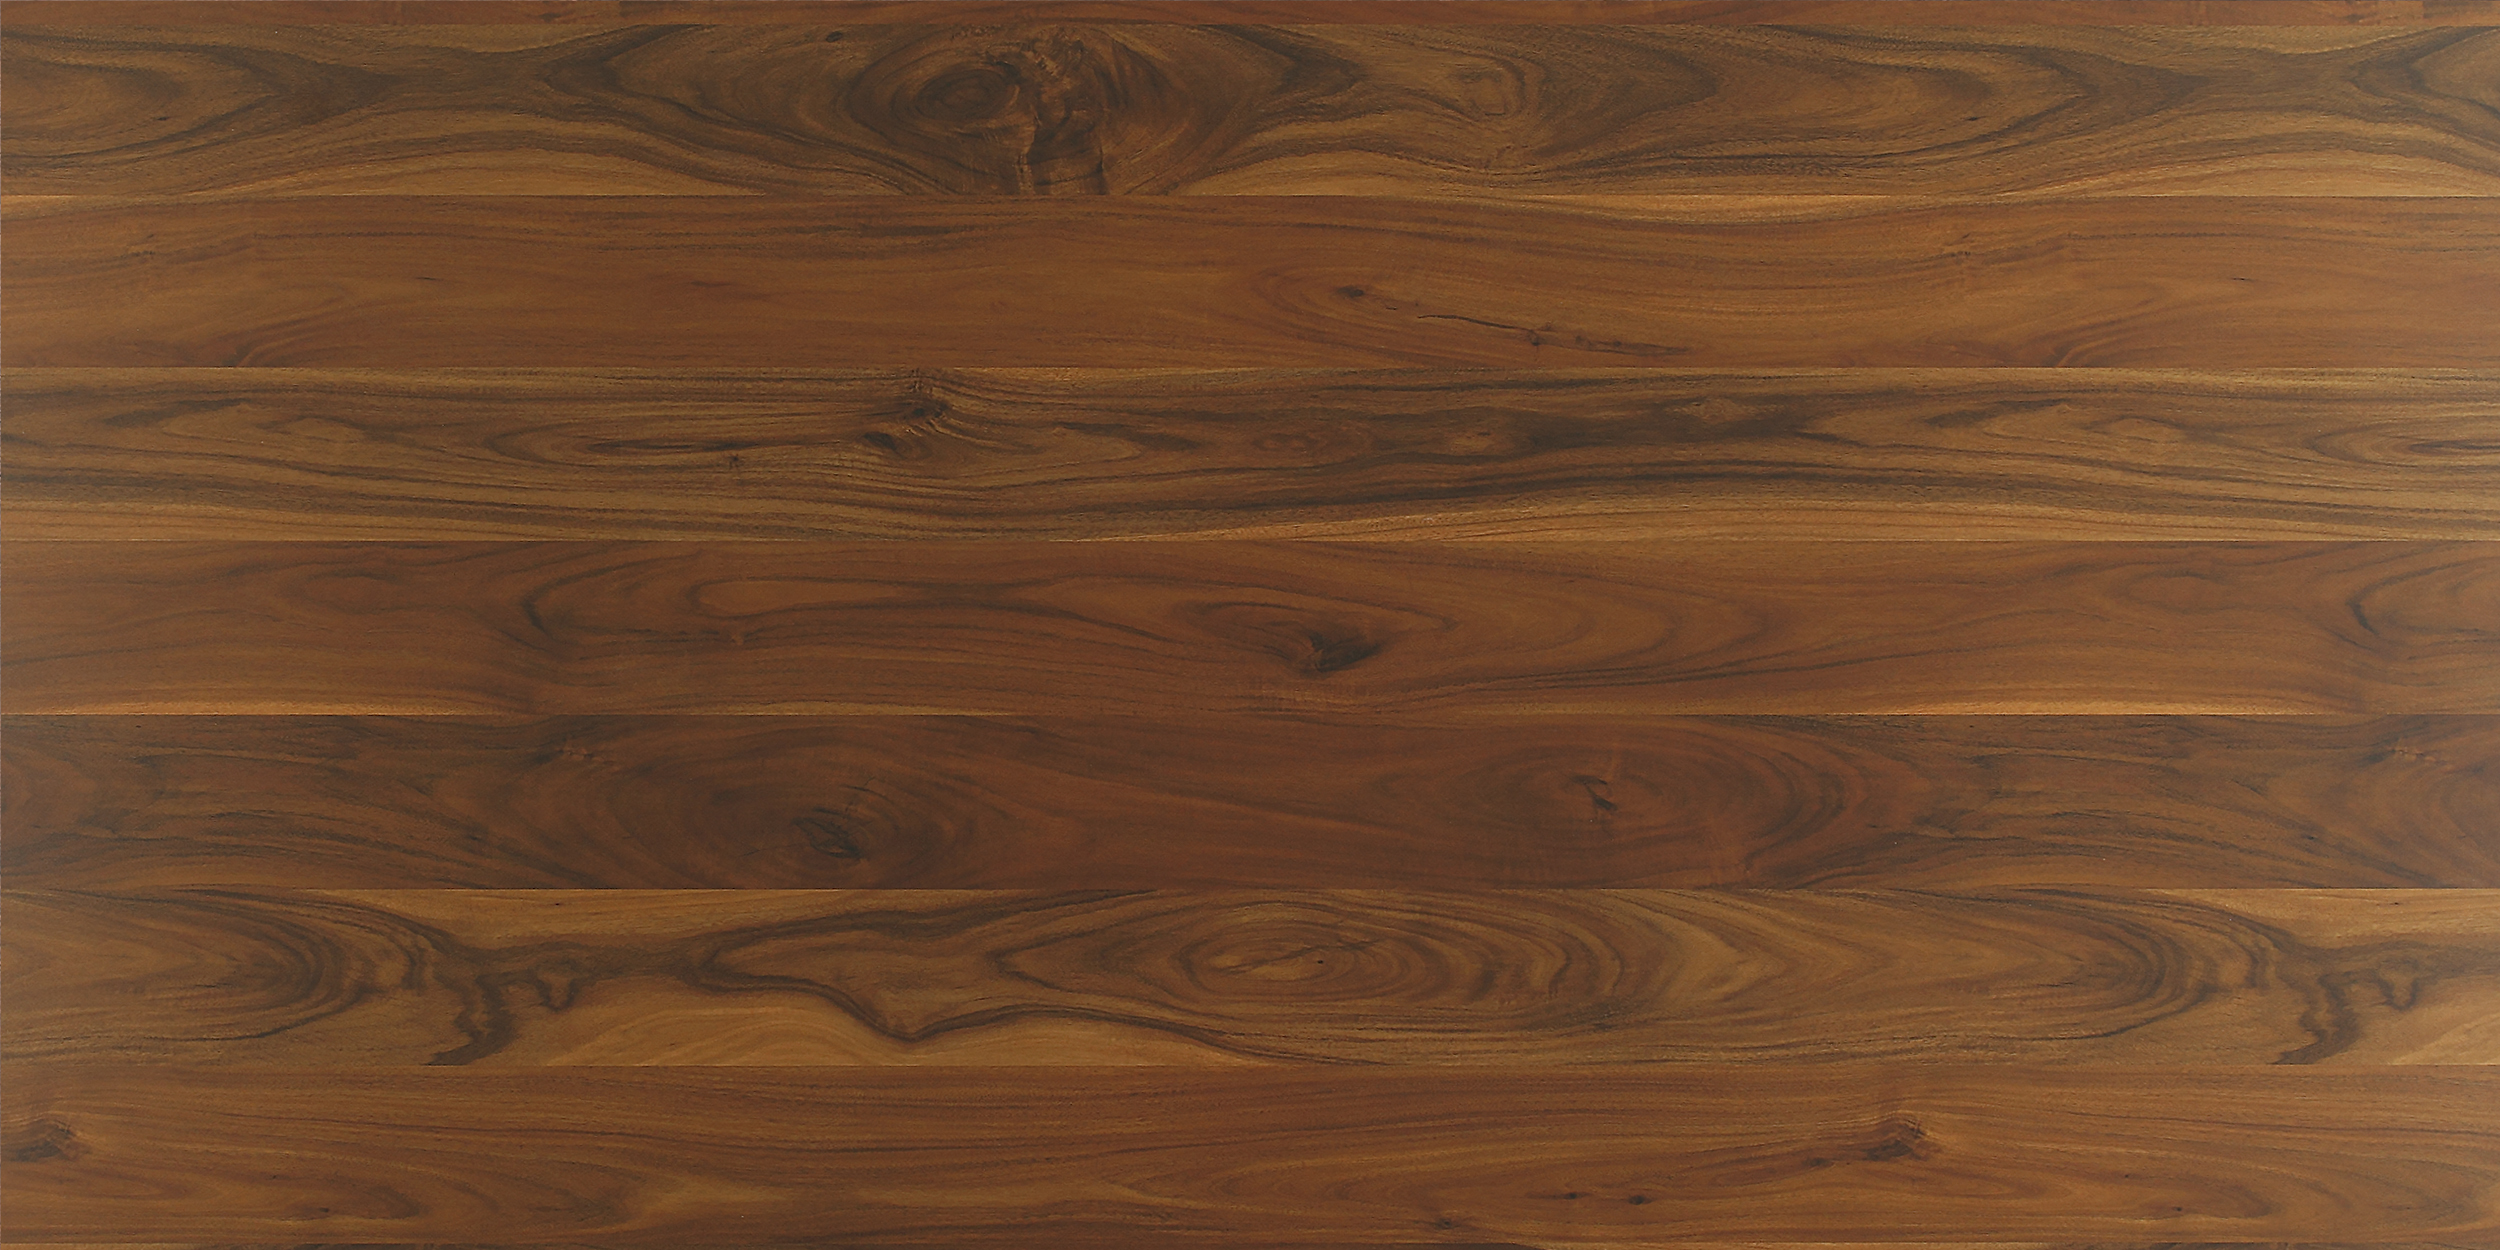 992 SF KNOTTY WALNUT PLANK